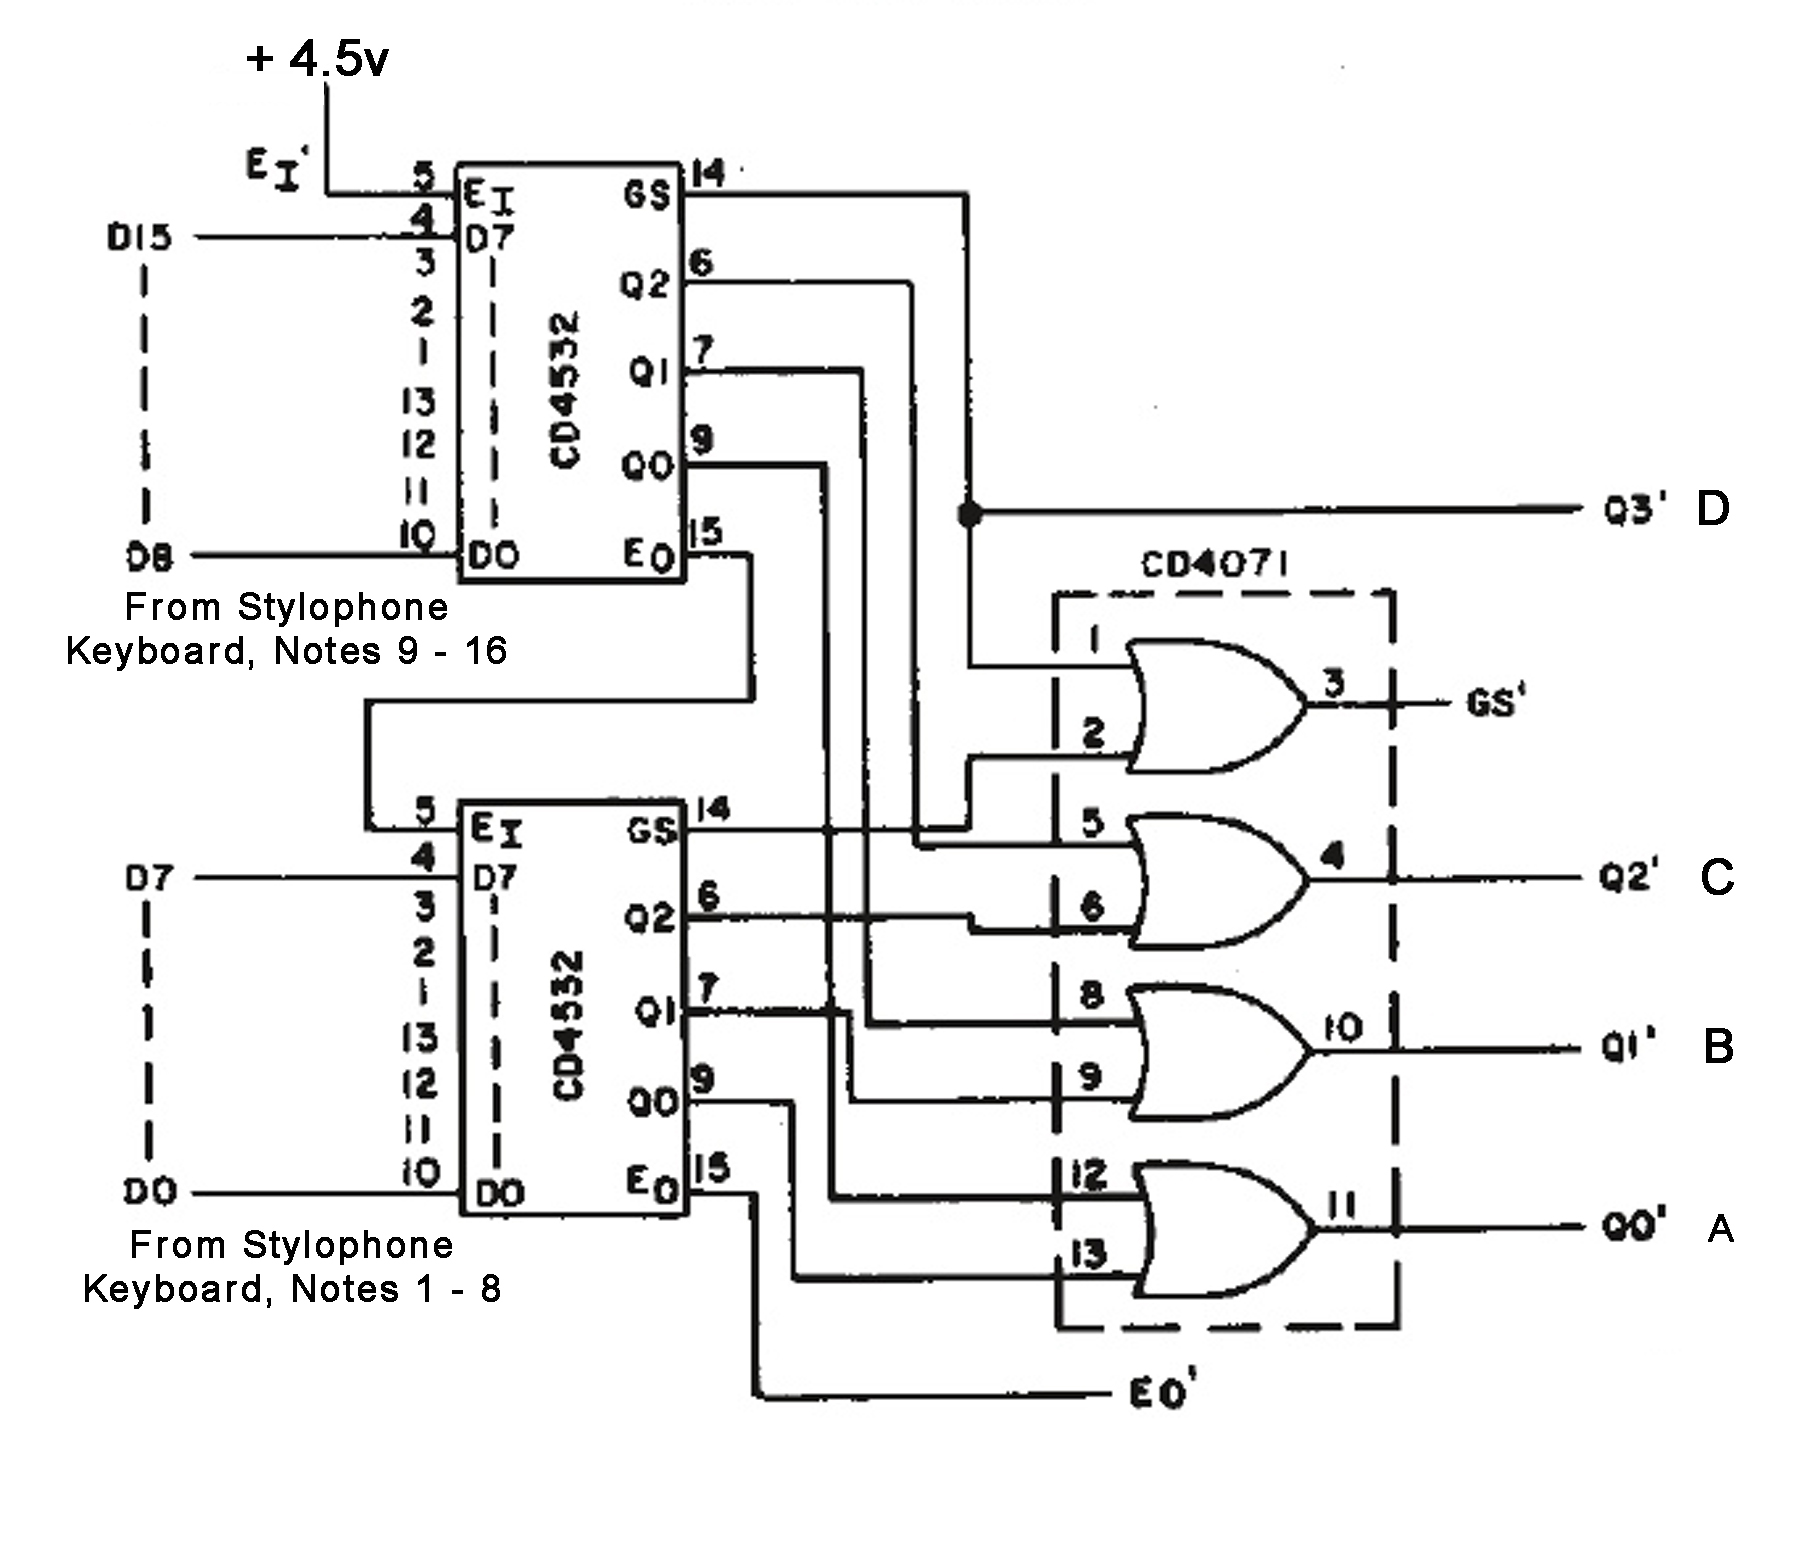 [WRG-4274] Logic Diagram Of 8 To 3 Encoder